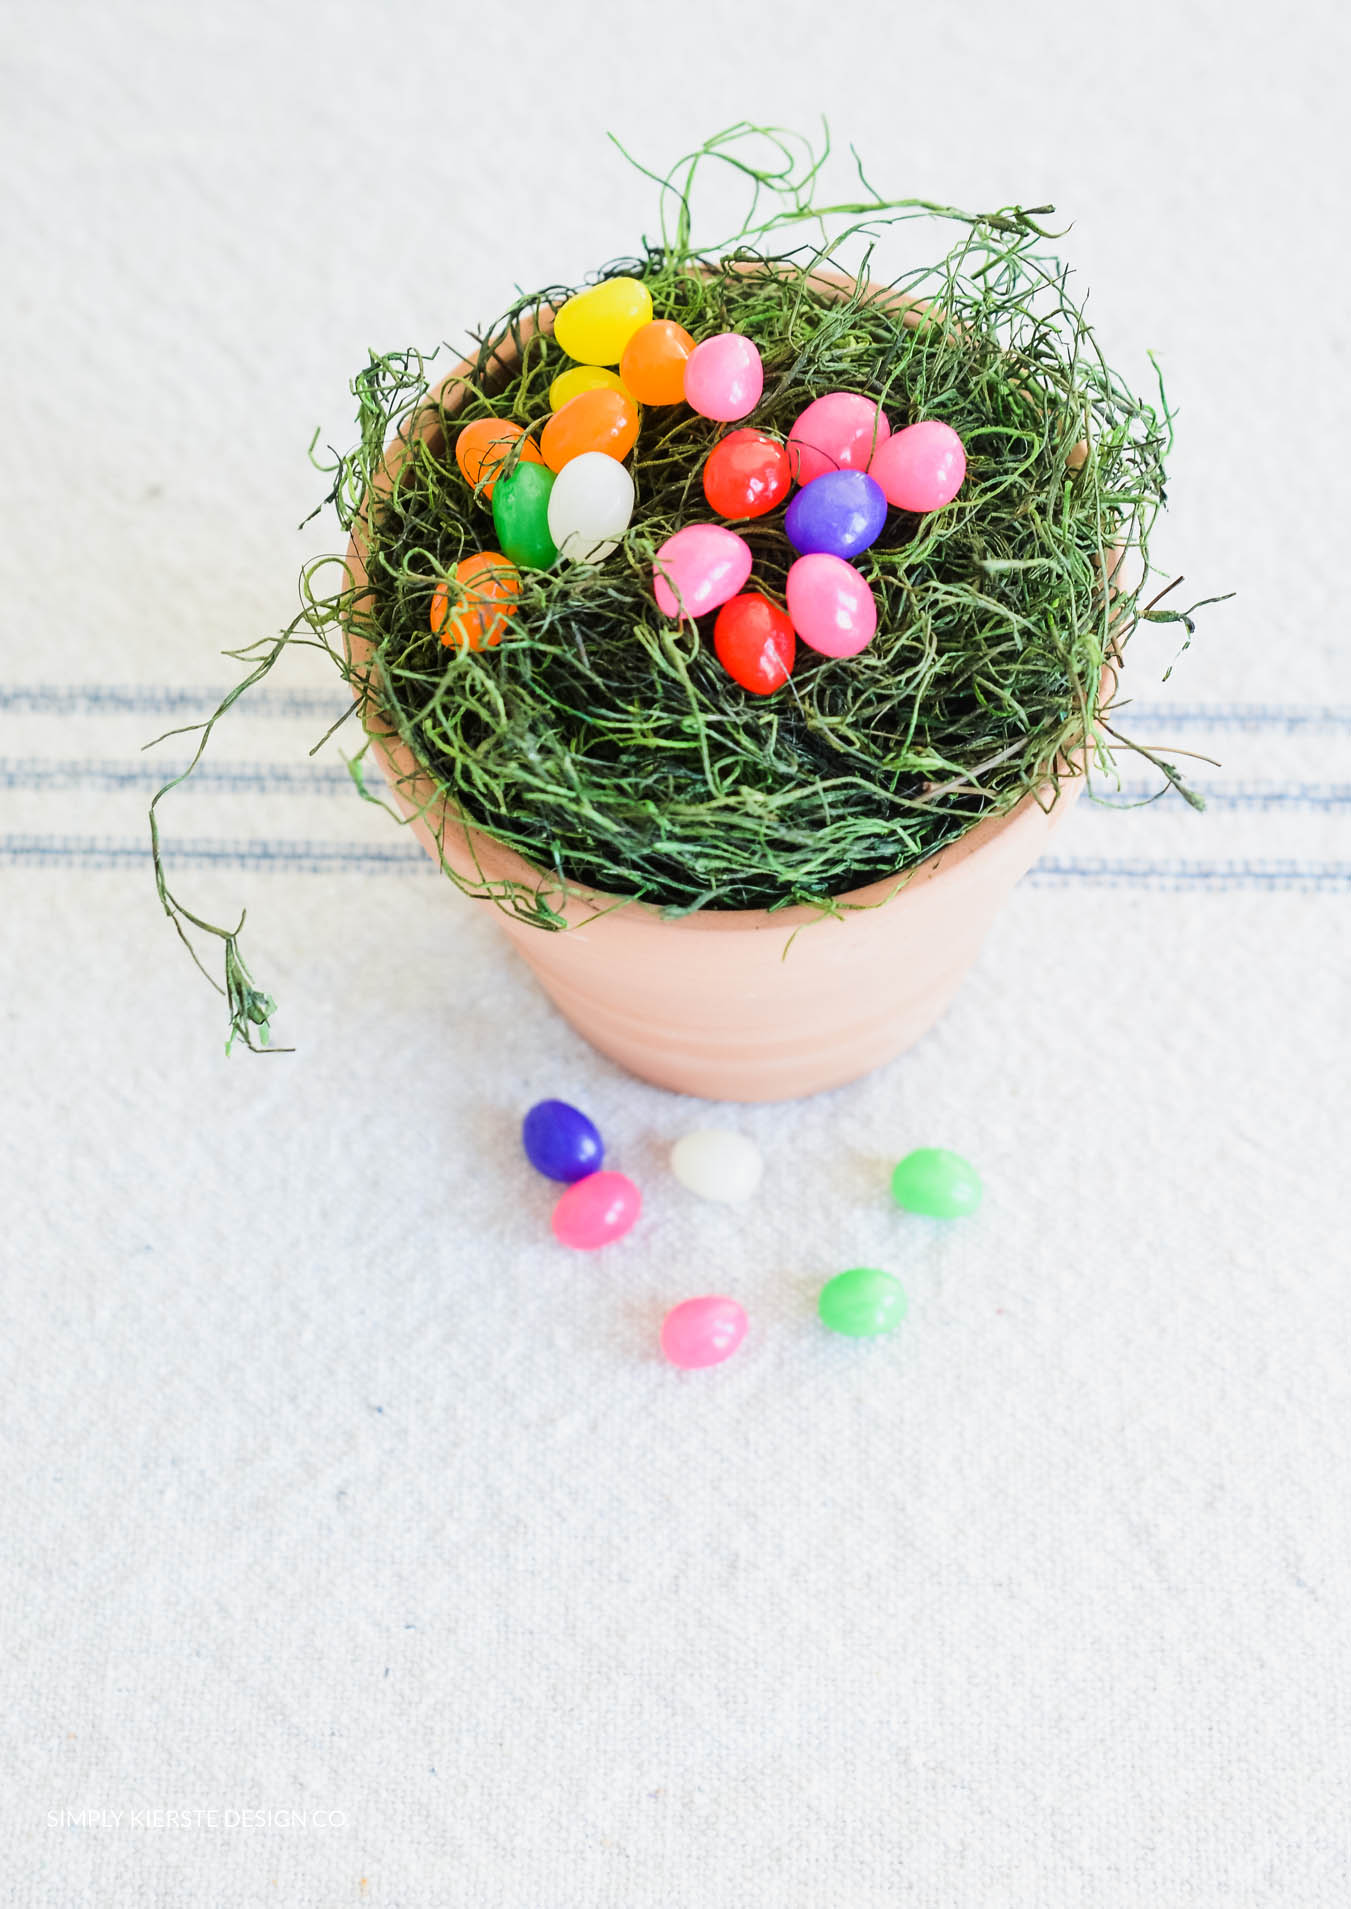 Magic Jelly Beans & Lollipop Garden | Easter Tradition | simplykierste.com #eastertradition #jellybeans #easterideas #easterforkids